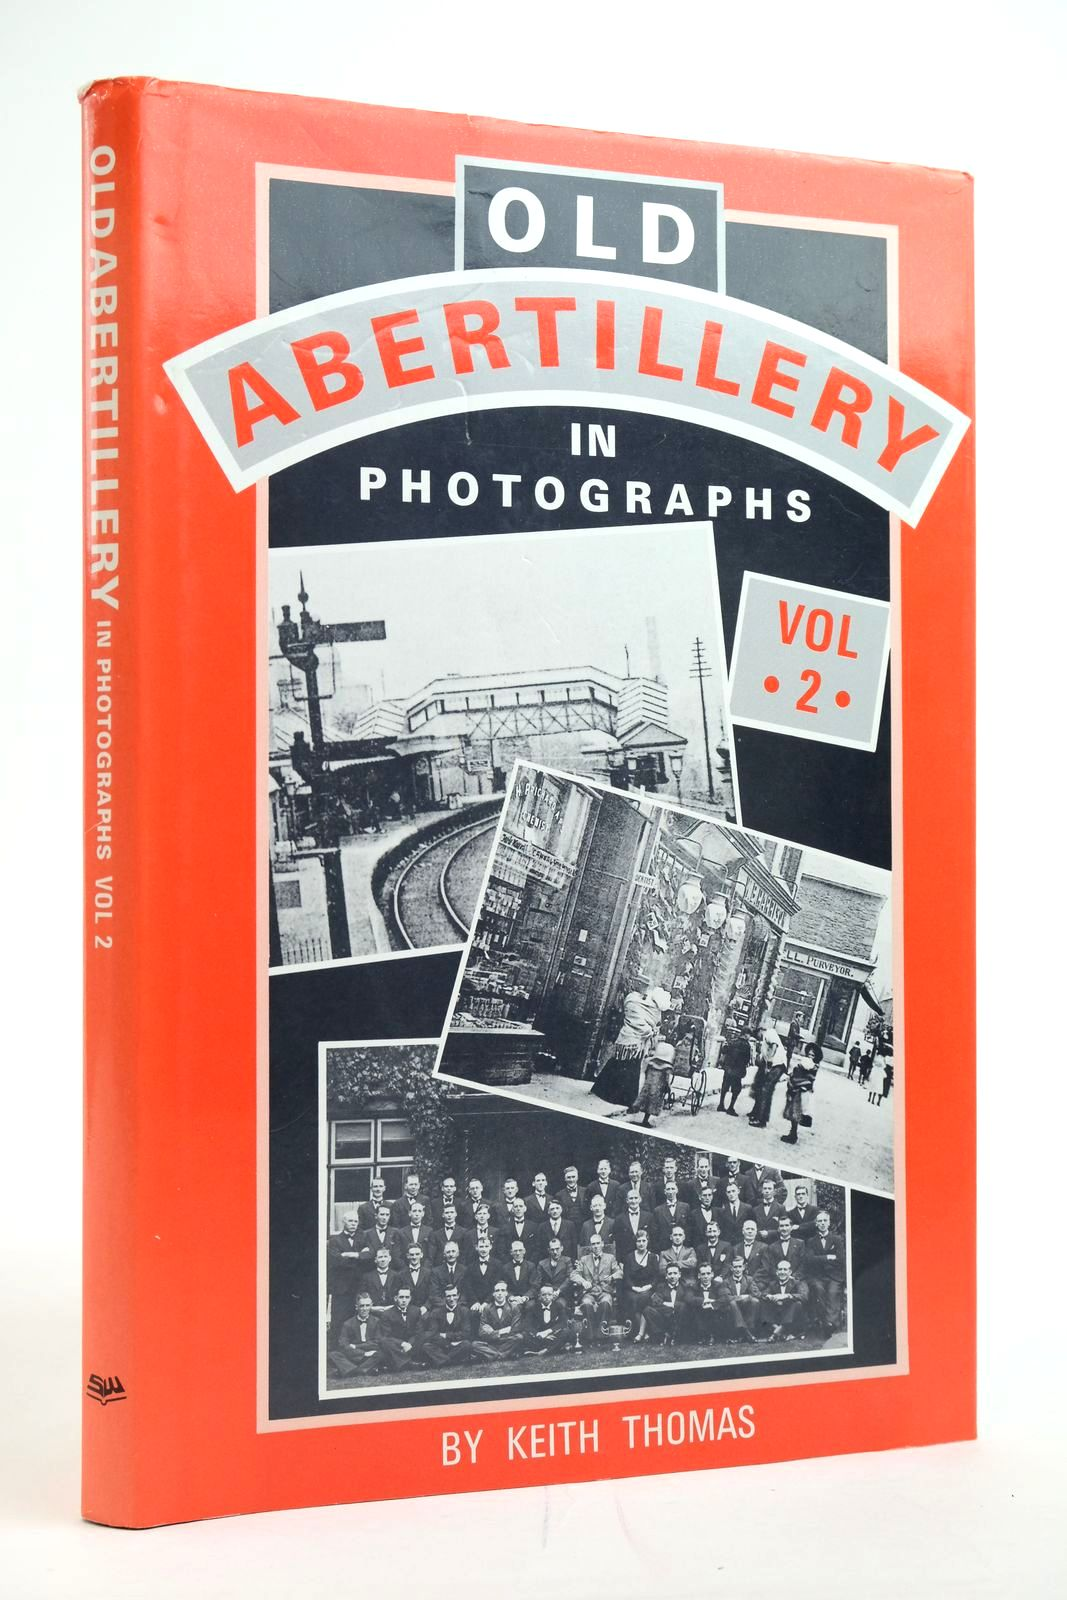 Photo of OLD ABERTILLERY IN PHOTOGRAPHS VOL 2- Stock Number: 2135282